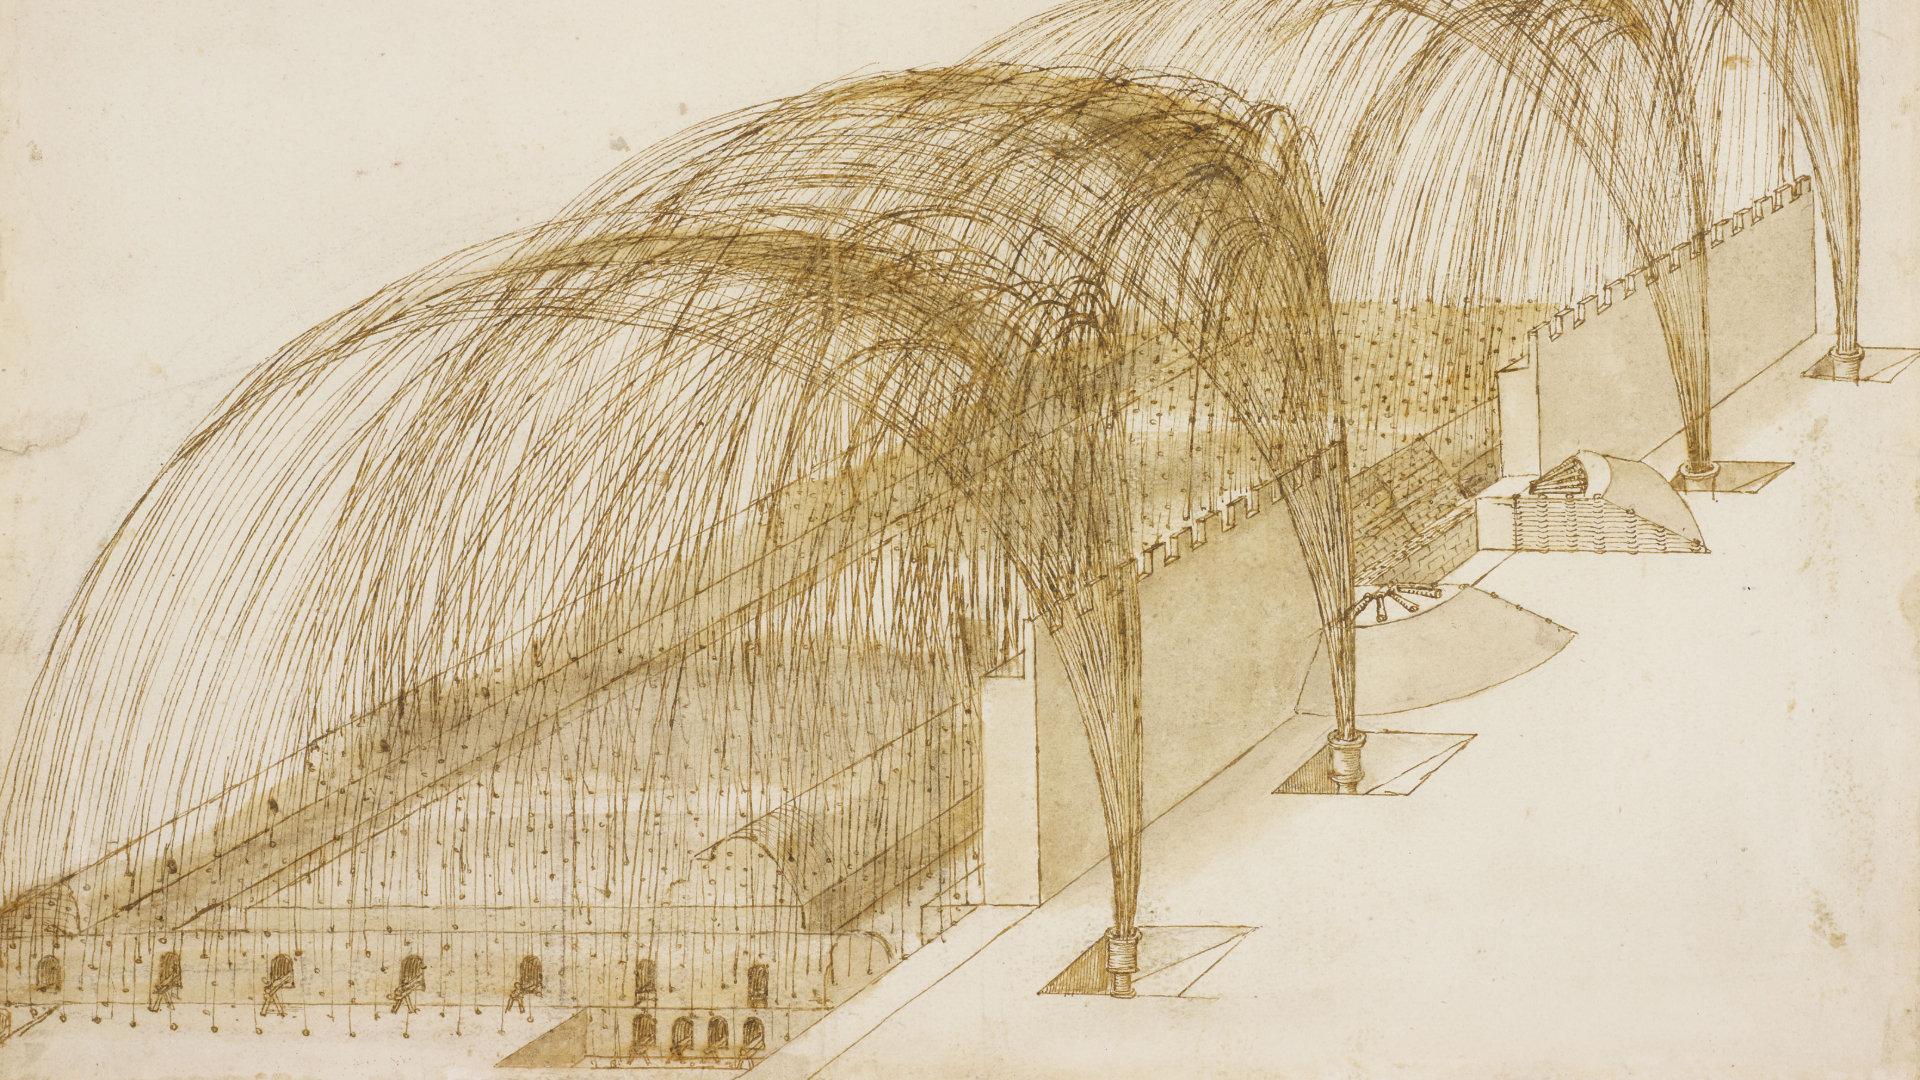 Drawing of mortars firing into a fortress as part of Leonardo da Vinci: A Life in Drawing exhibition at The Queen's Gallery, Buckingham Palace